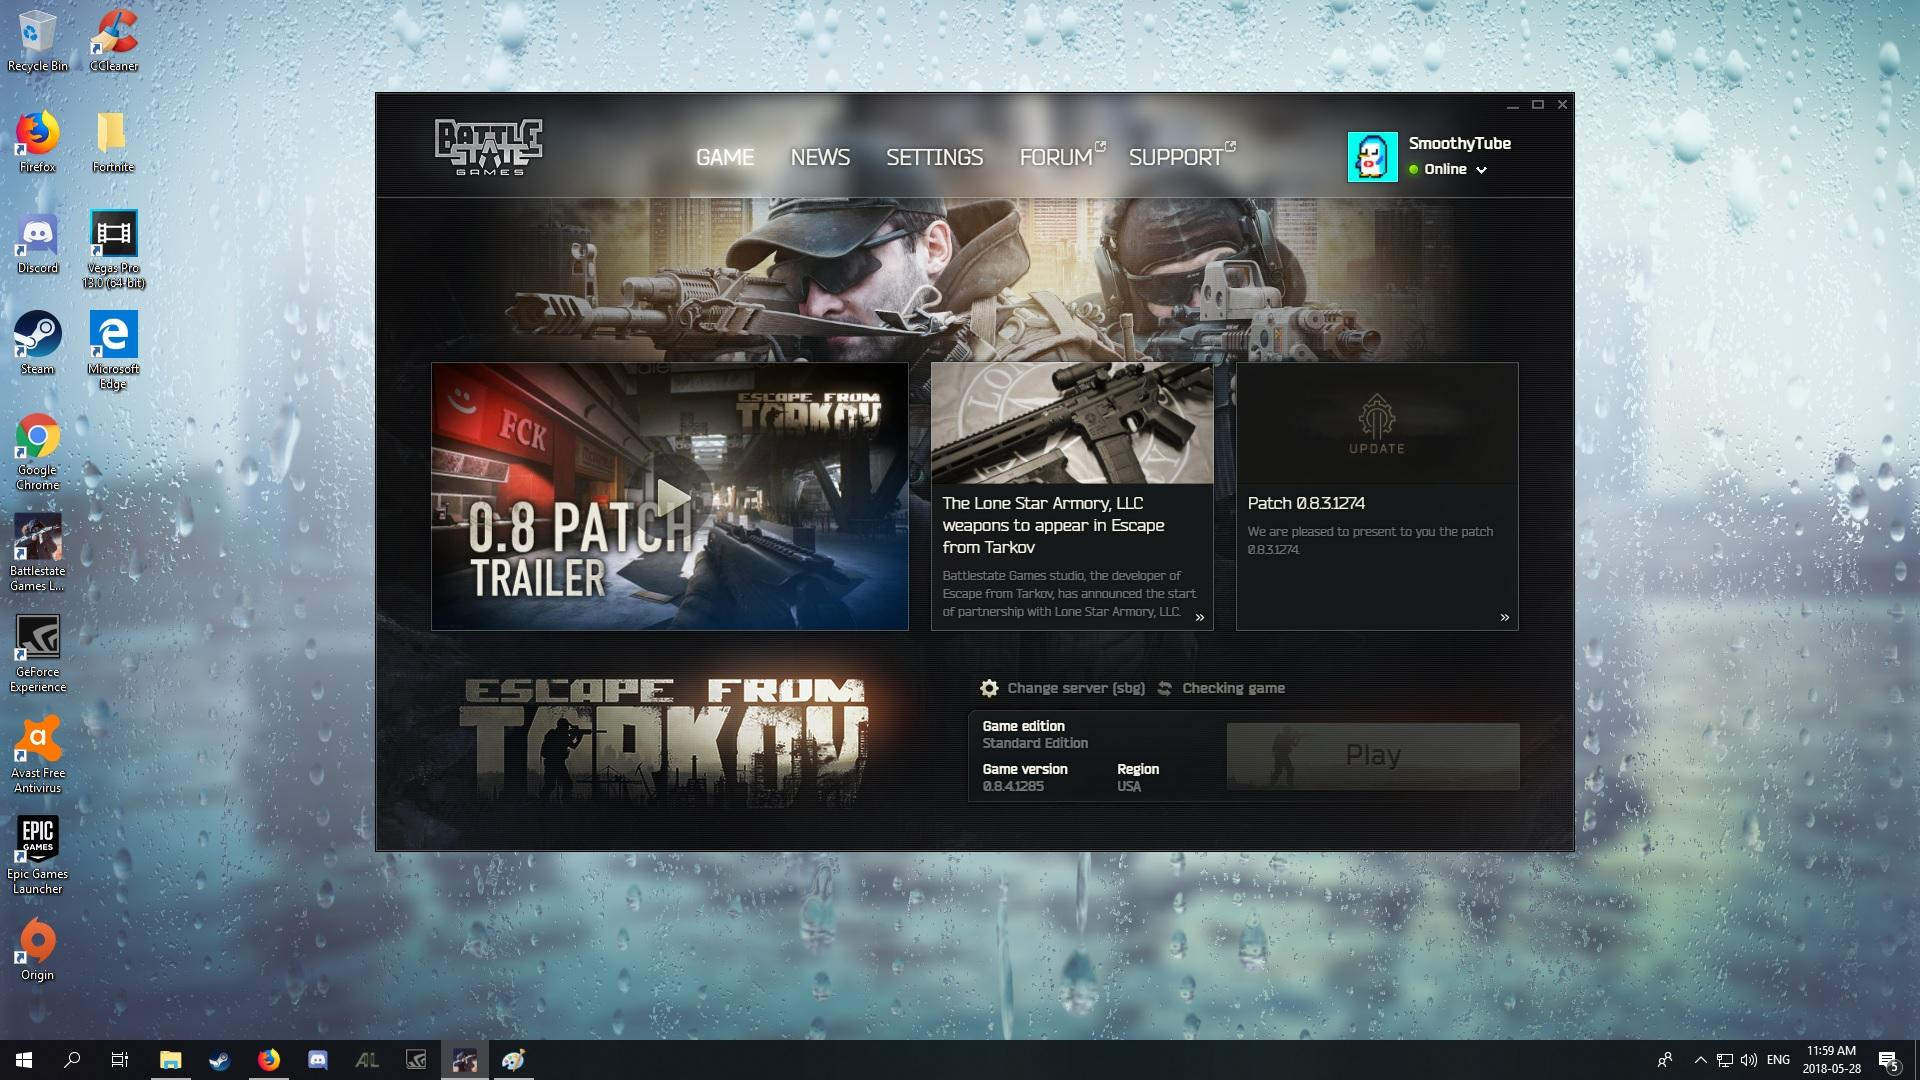 Game wont launch - Game questions - Escape from Tarkov Forum